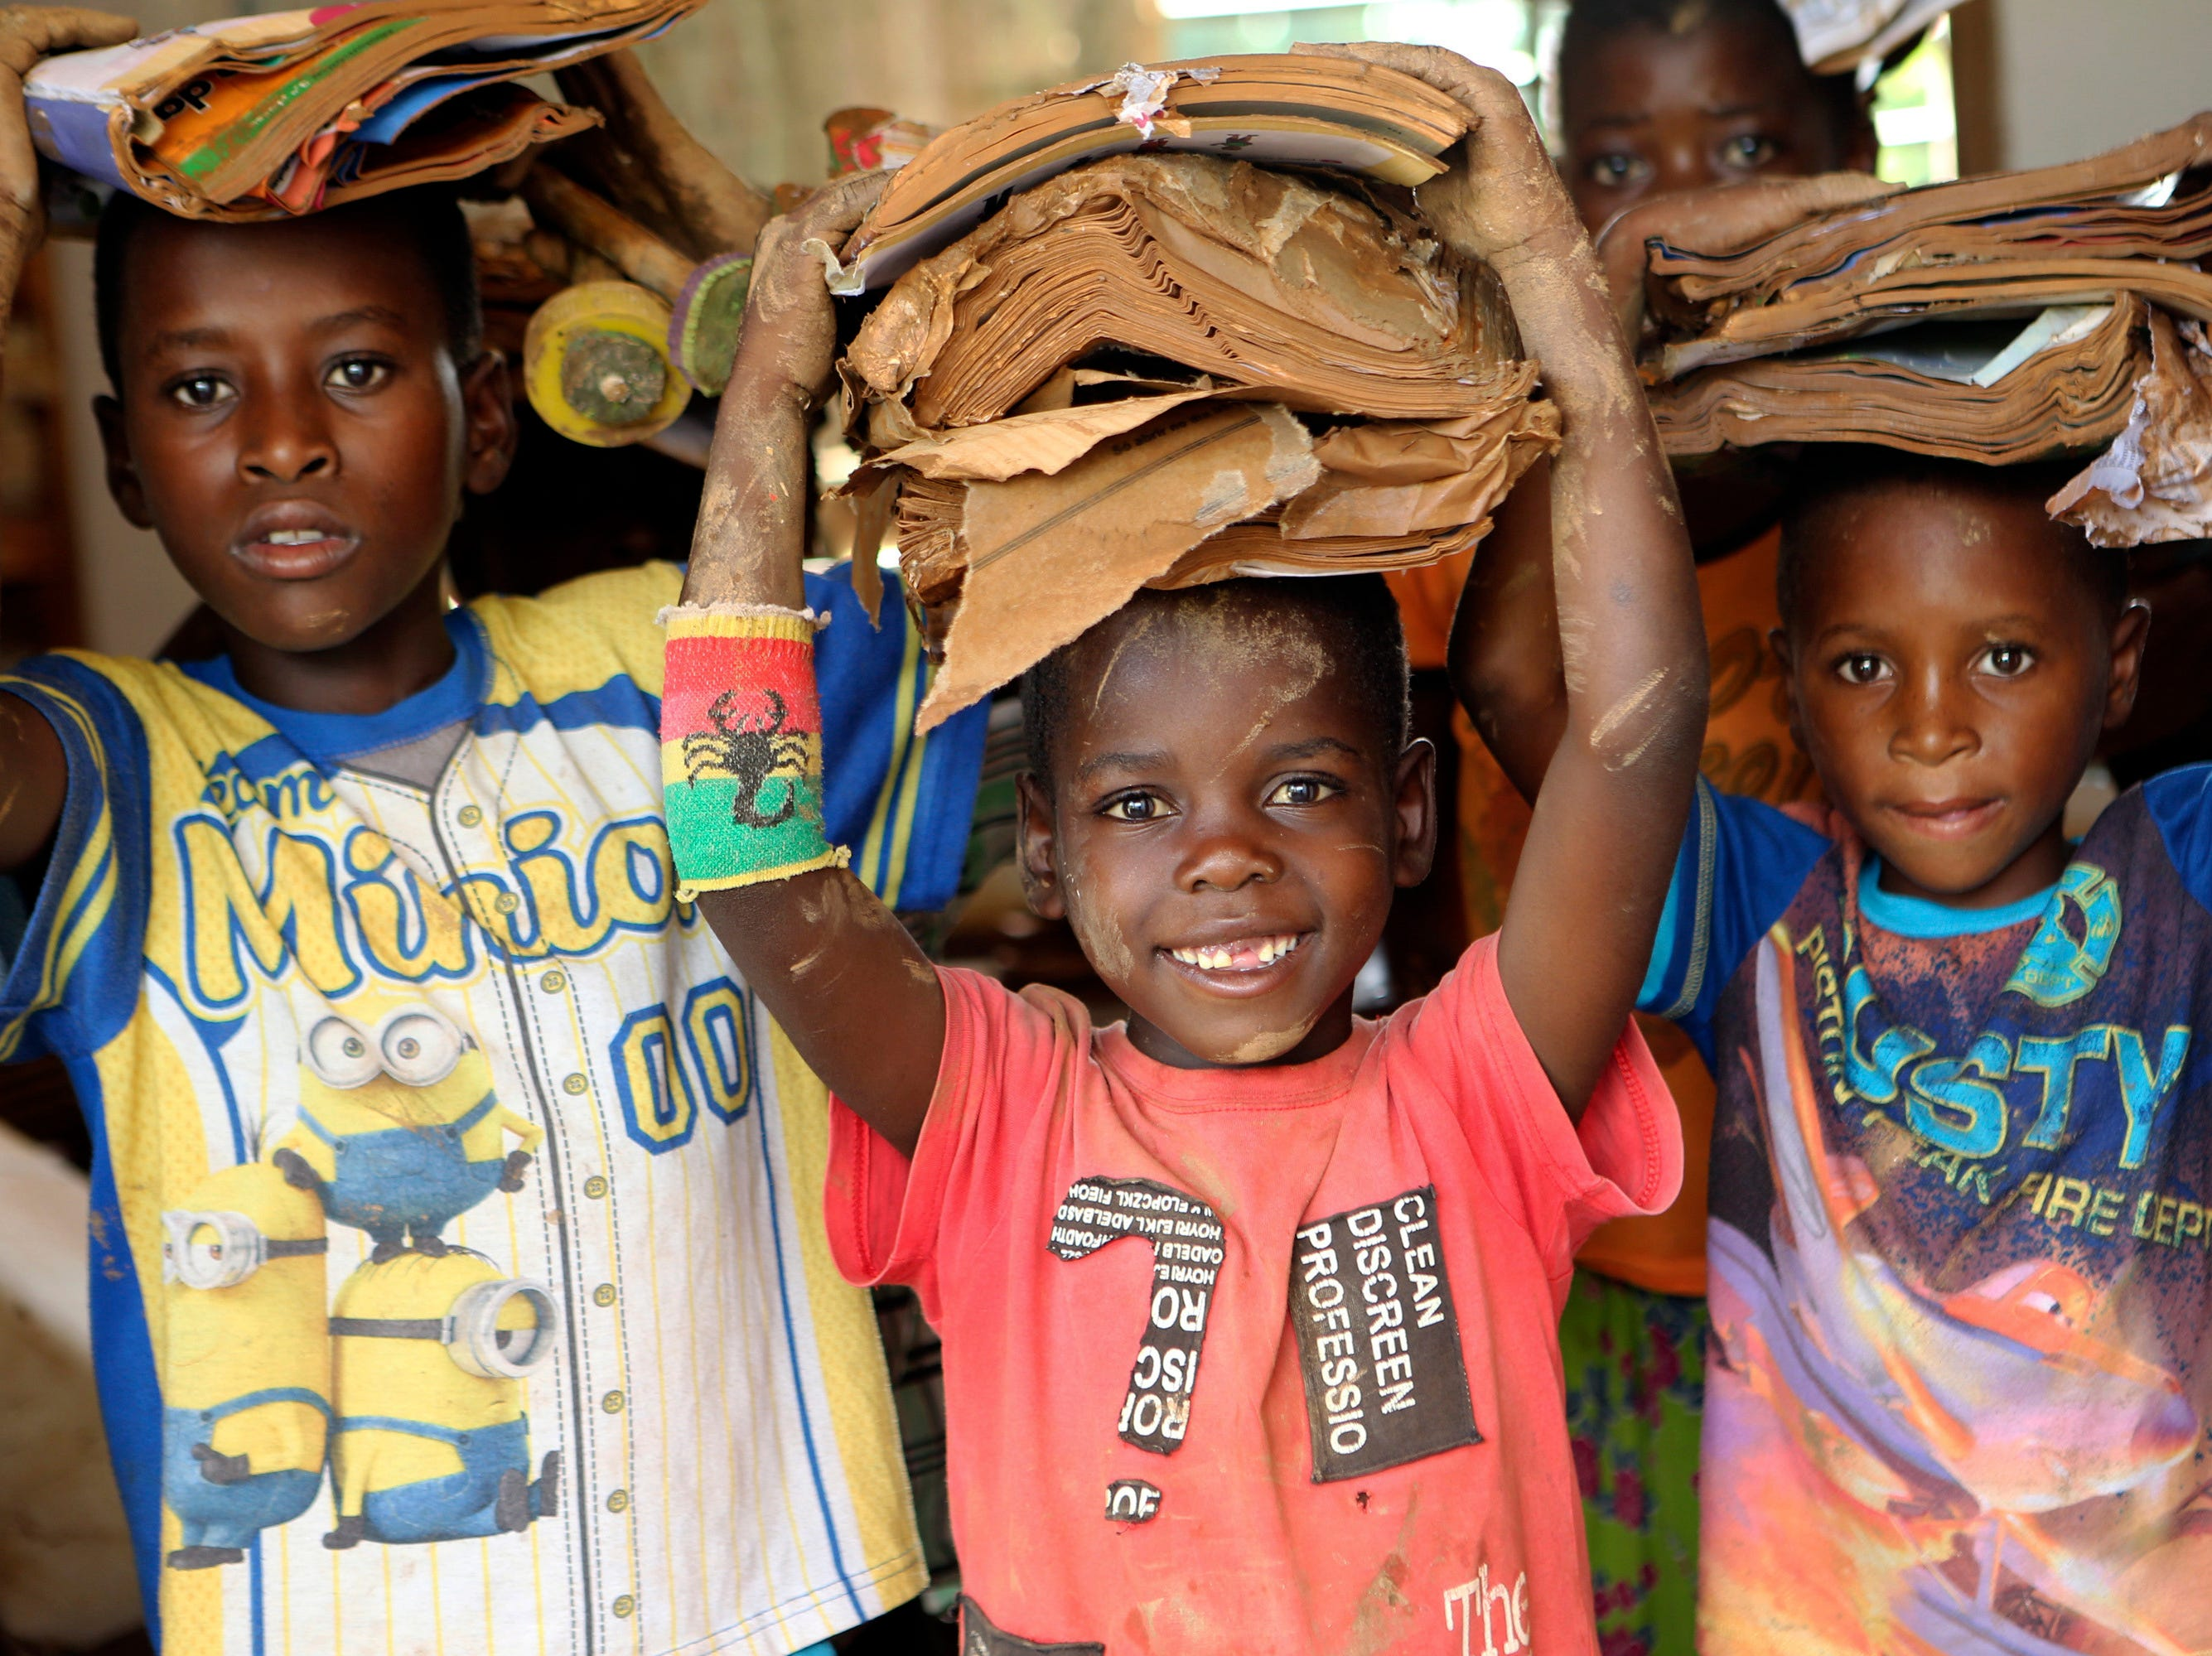 Children carry books damaged by the cyclone at a camp for displaced survivors of cyclone Idai in Dombe, about 280km west of Beira, Mozambique, Thursday, April 4, 2019. The Indian Ocean port of Beira, a city of 500,000, is where most of the more than 1,400 cases of cholera have been reported since the outbreak was declared a week ago in the aftermath of Cyclone Idai. Mozambican authorities have reported two deaths so far from the acute diarrheal disease, which can kill within hours if not properly treated.